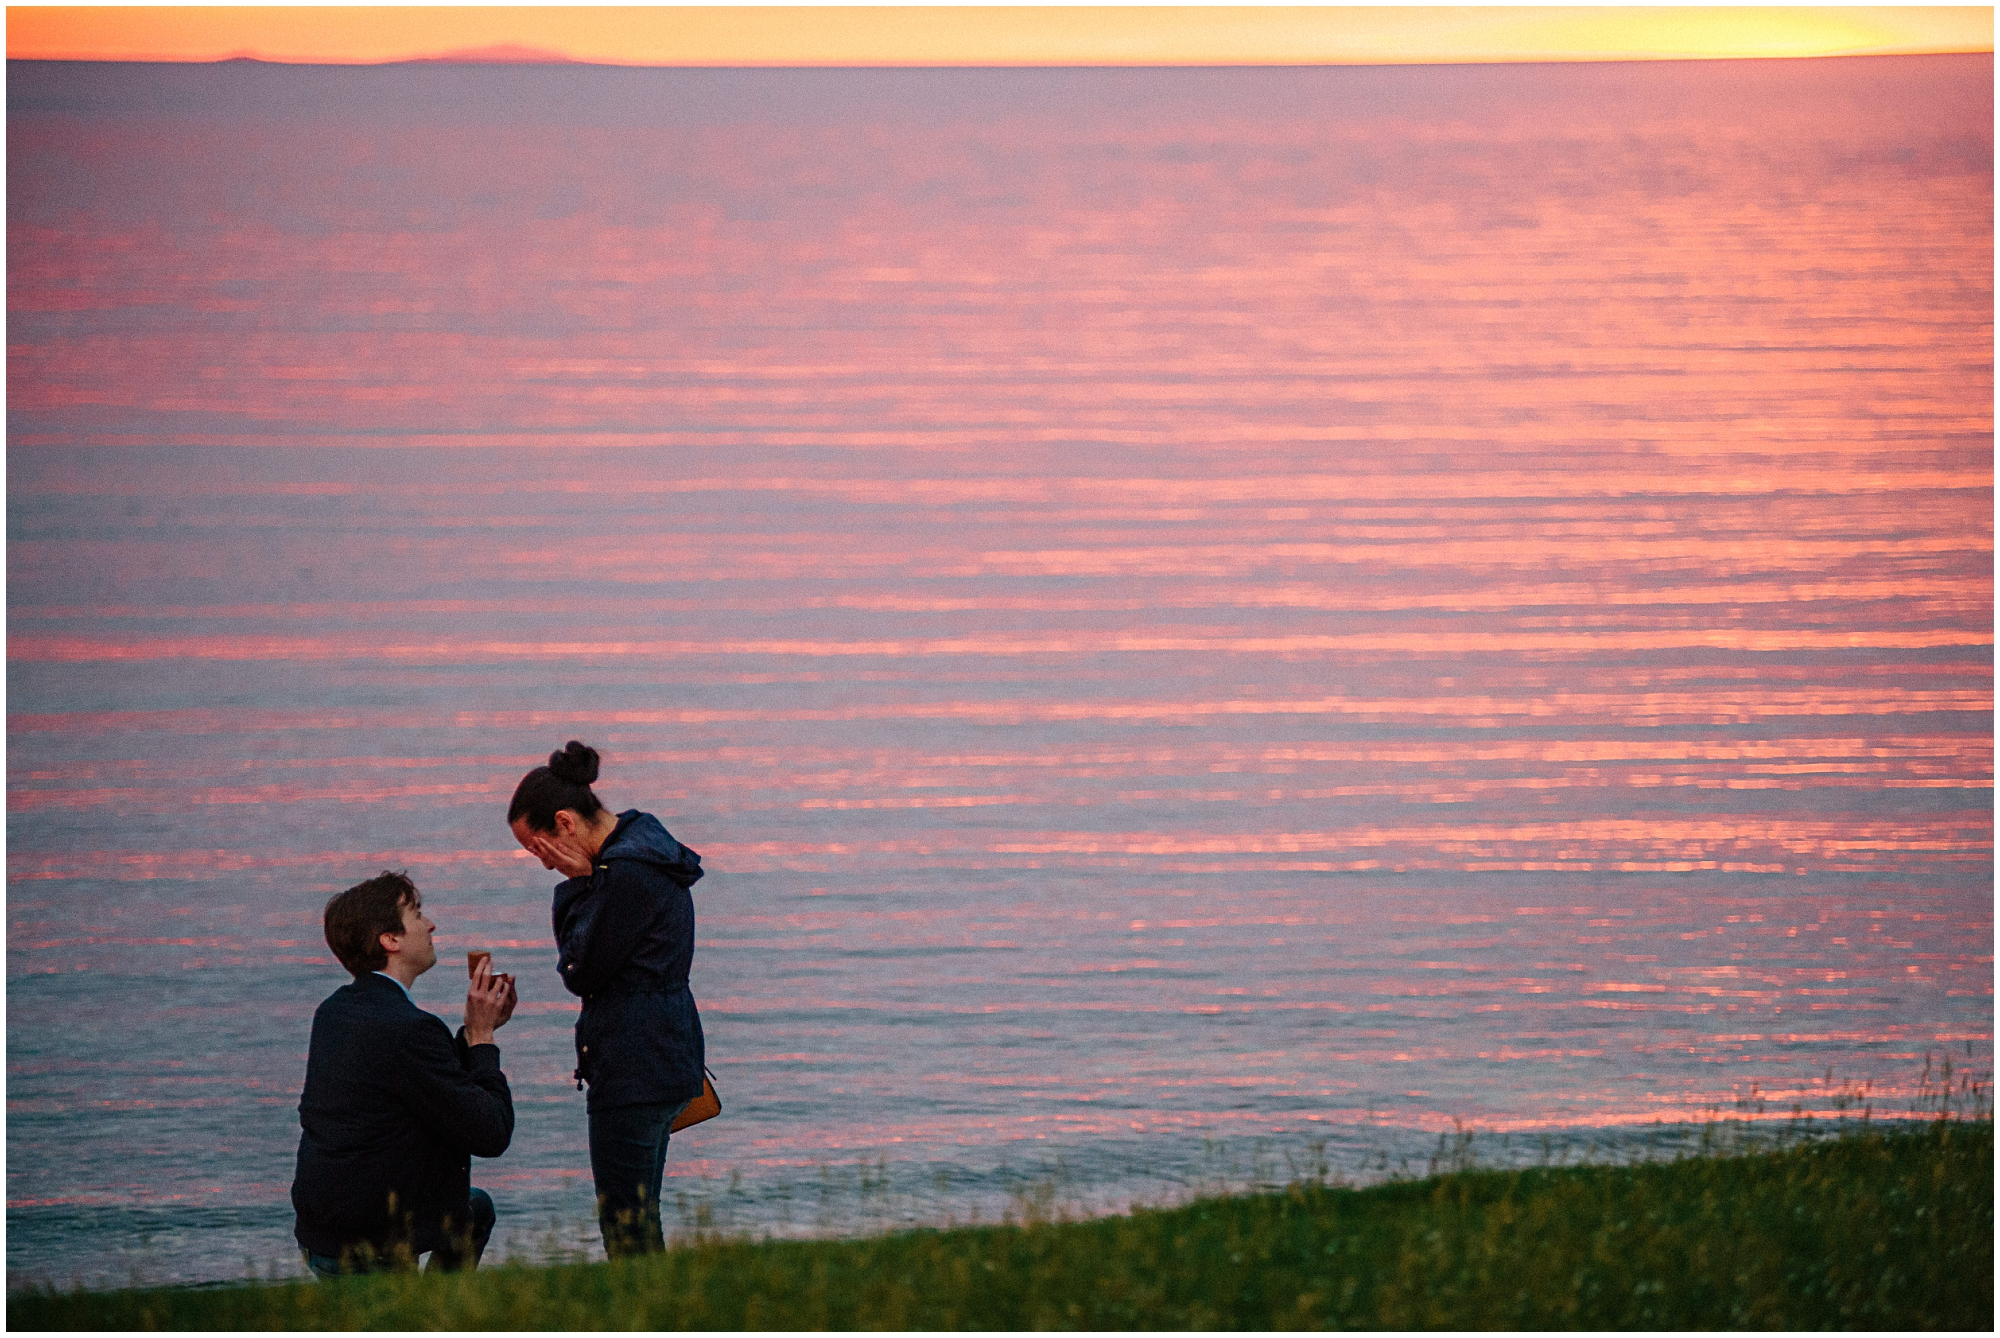 young man proposes to girlfriend at Coral beach Isle of Skye sunset lit sea in background